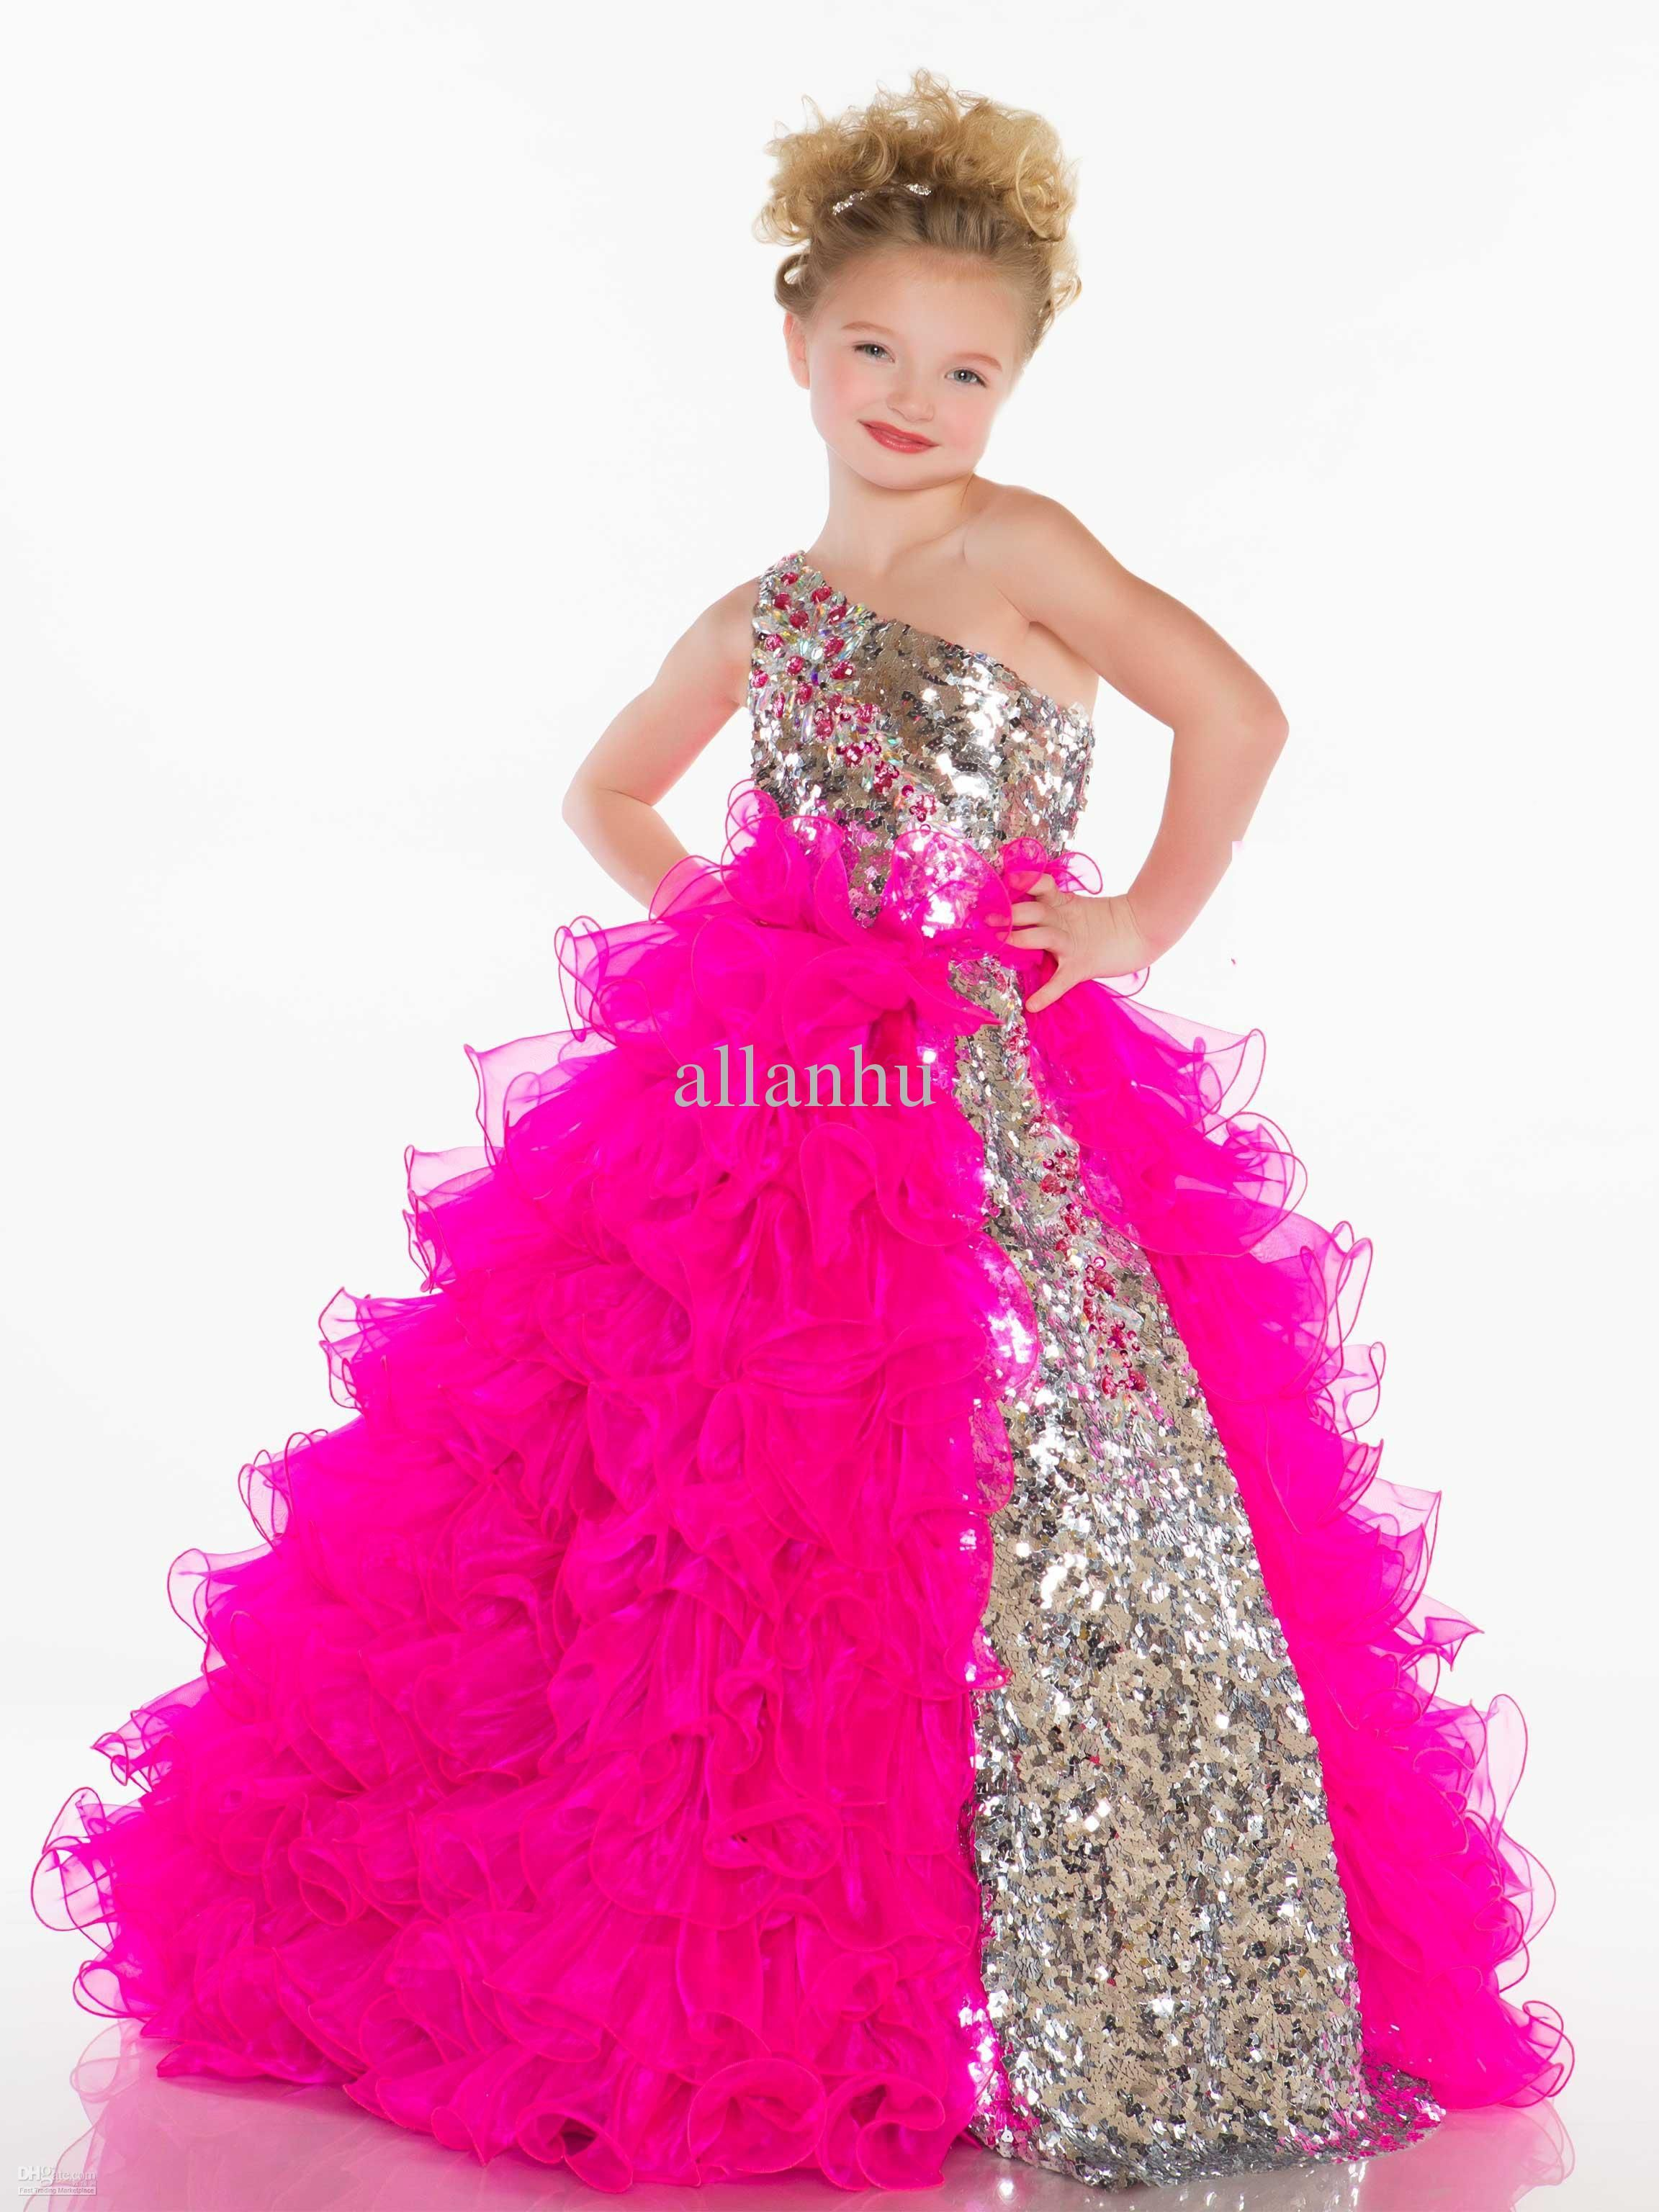 Girls Pageant Dresses - Tiffany Designs Princess ball gowns will ...